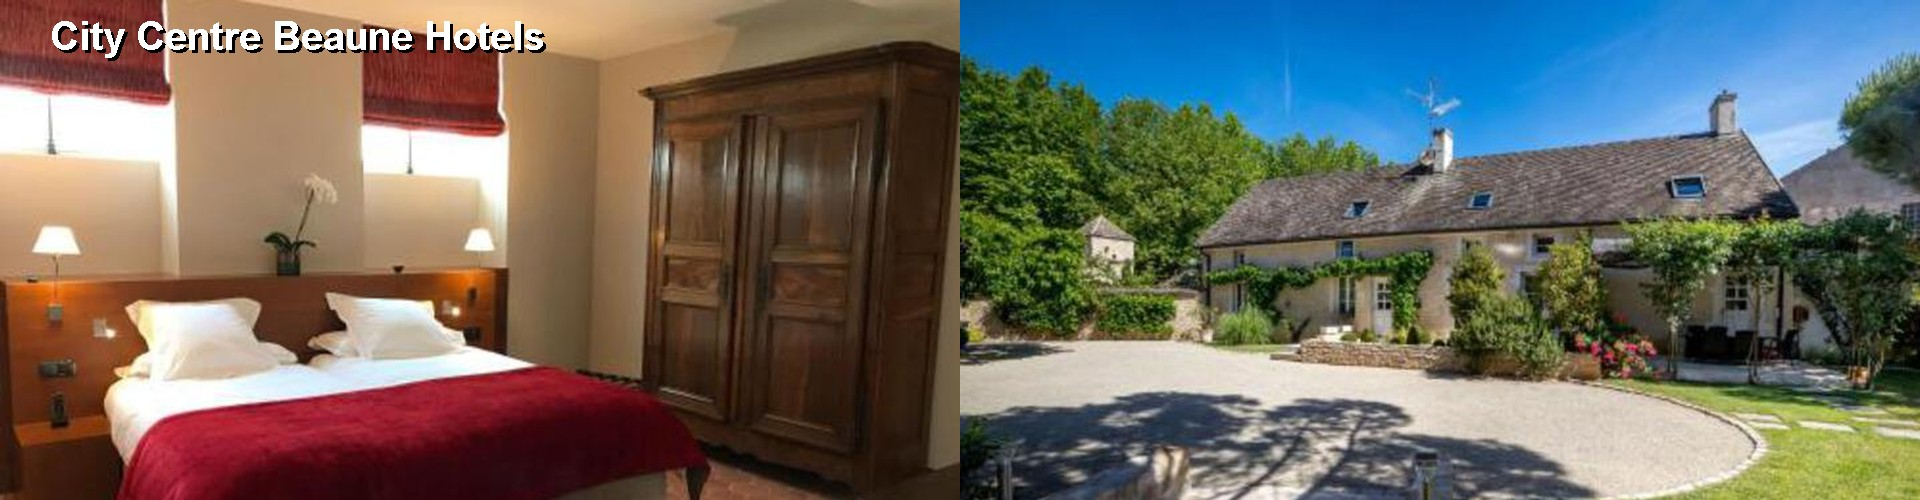 Beaune Hotel Hotels Near City Centre Beaune